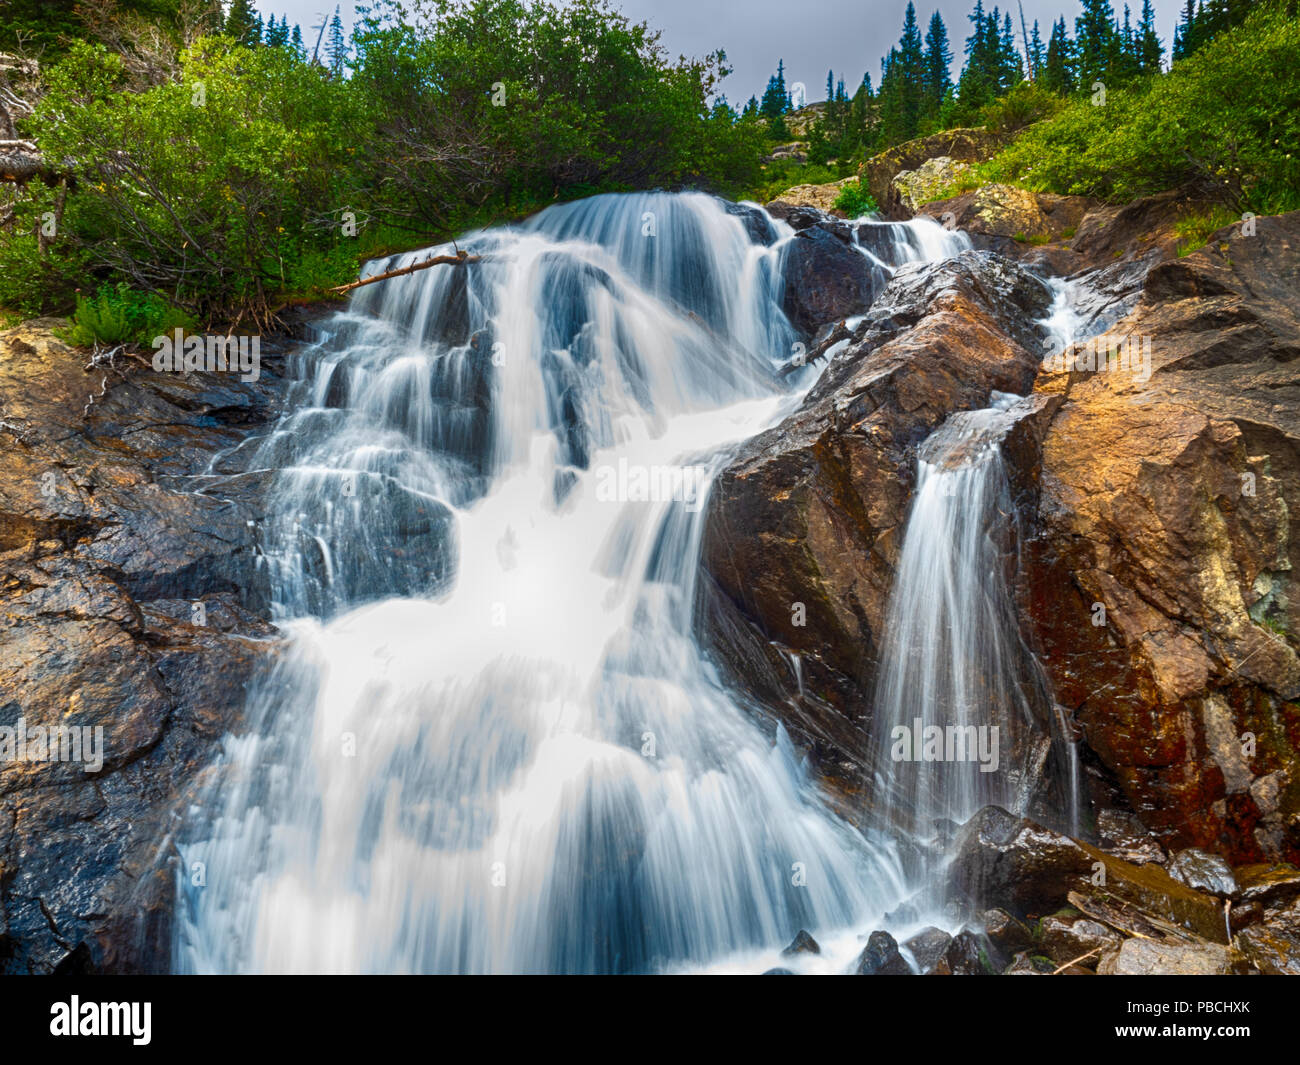 Waterfall in the Arapaho National Forrest Near Breckenridge Colorado on a Summer Day - Stock Image